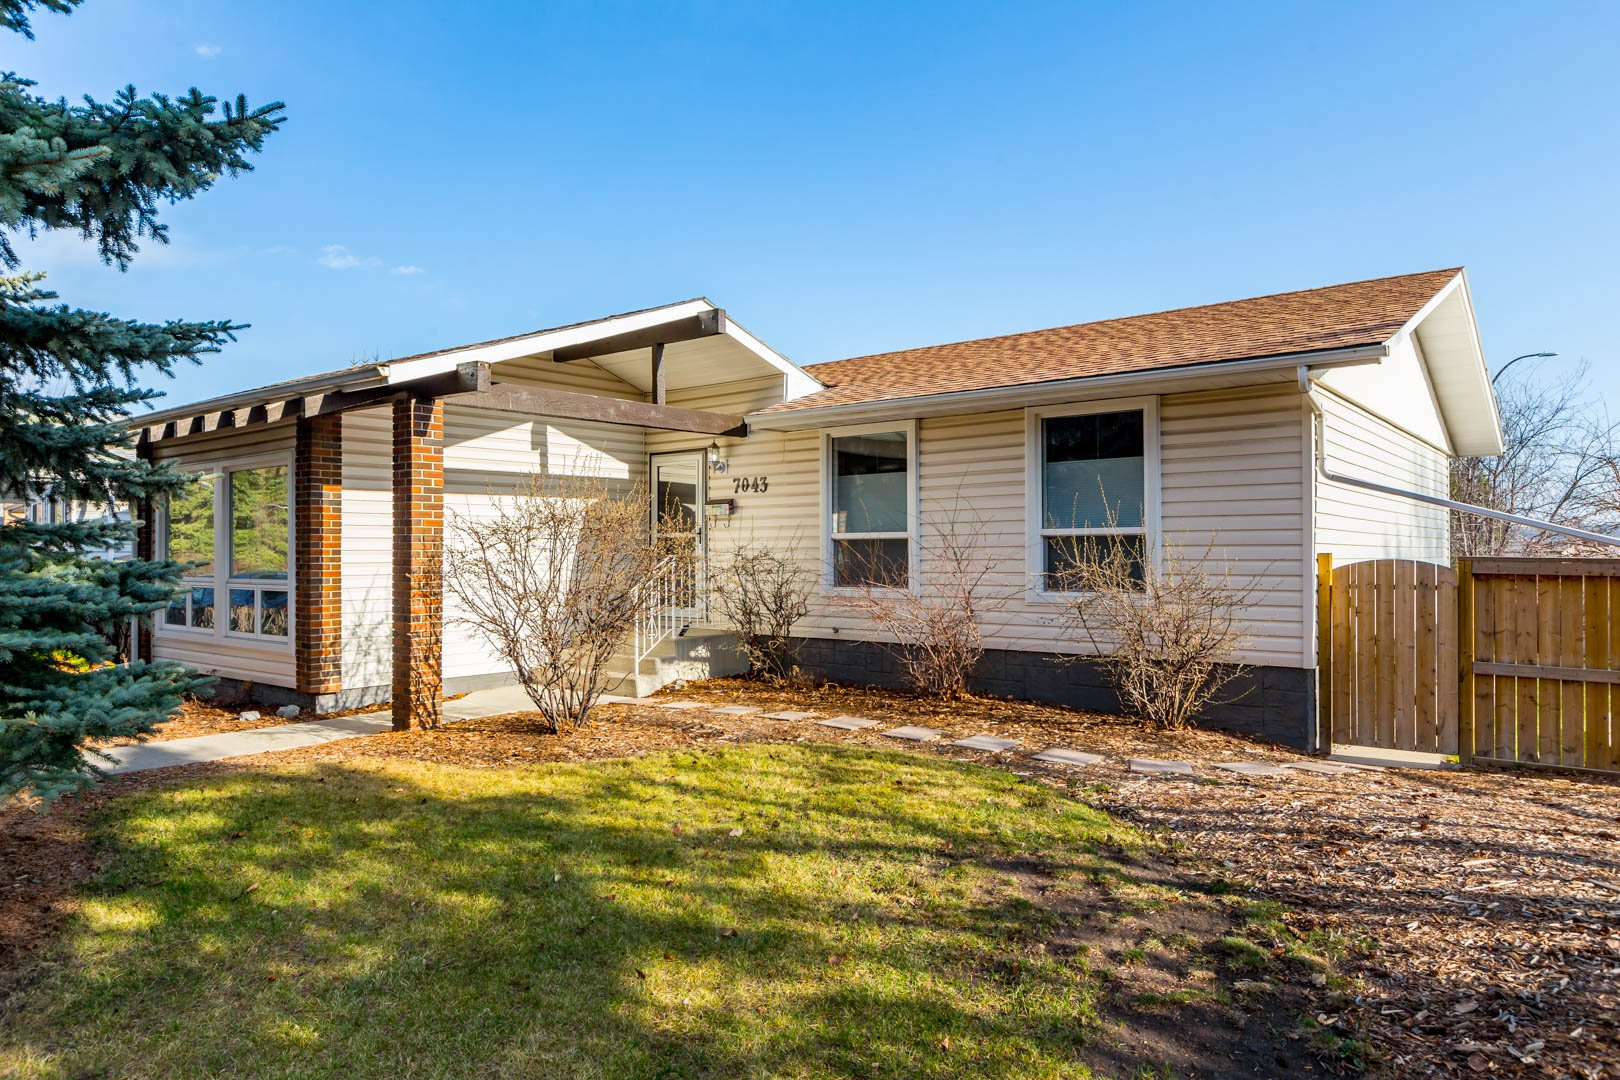 Main Photo: 7043 61 Avenue NW in Calgary: Silver Springs House for sale : MLS®# C4261296